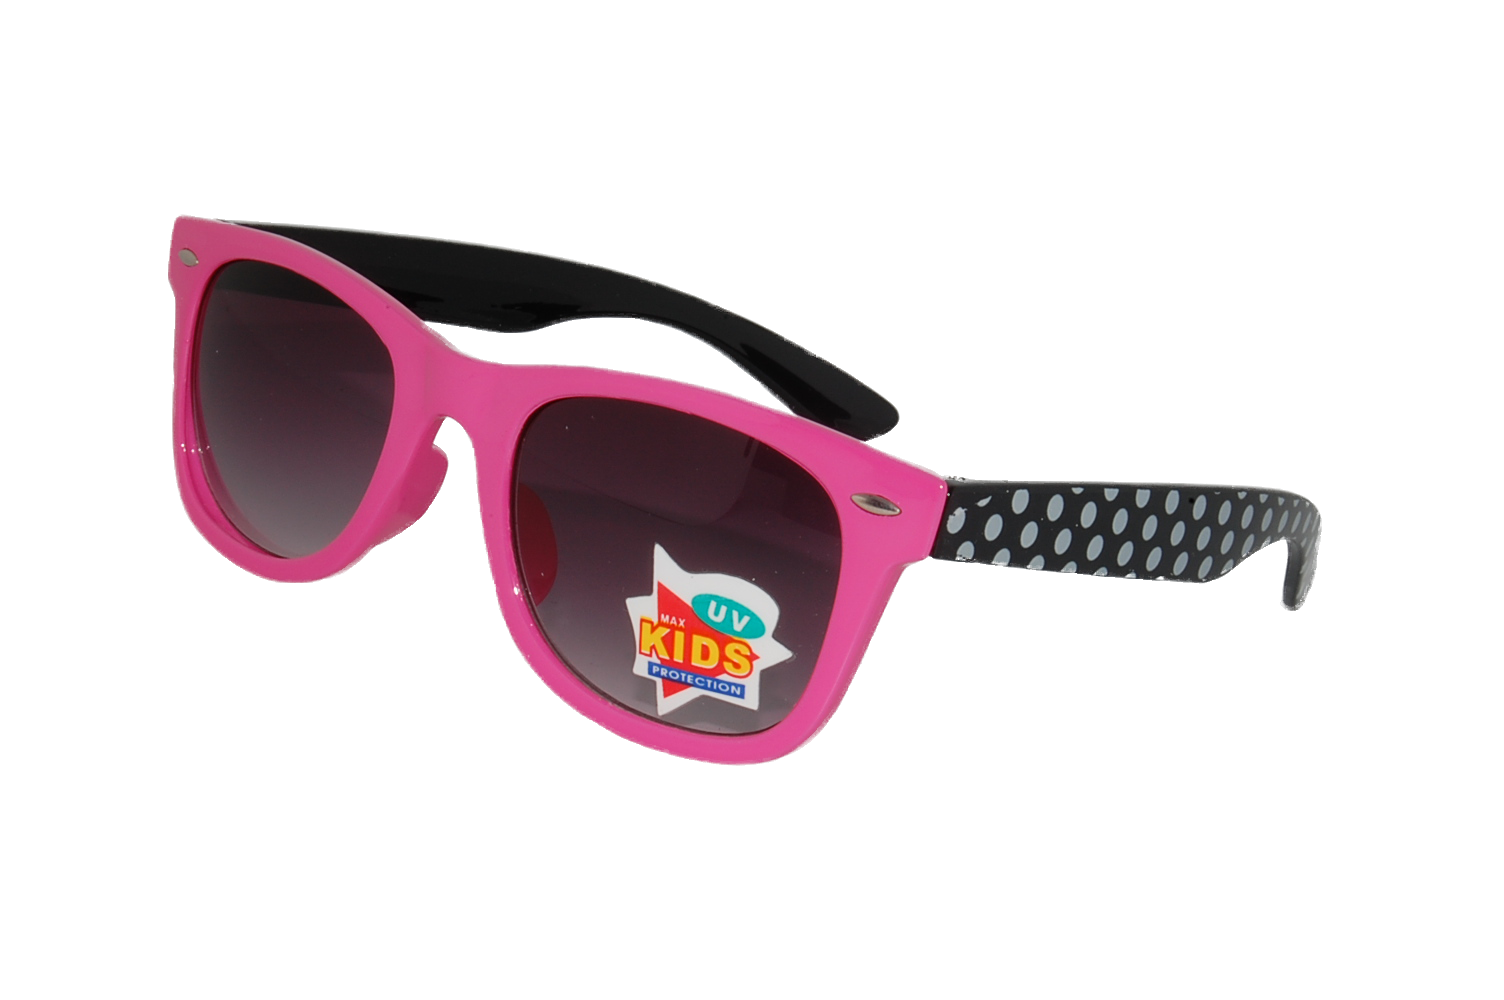 Kidz K004 at Bright Eyes Sunglasses in Tweed Heads South, NSW | Tuggl